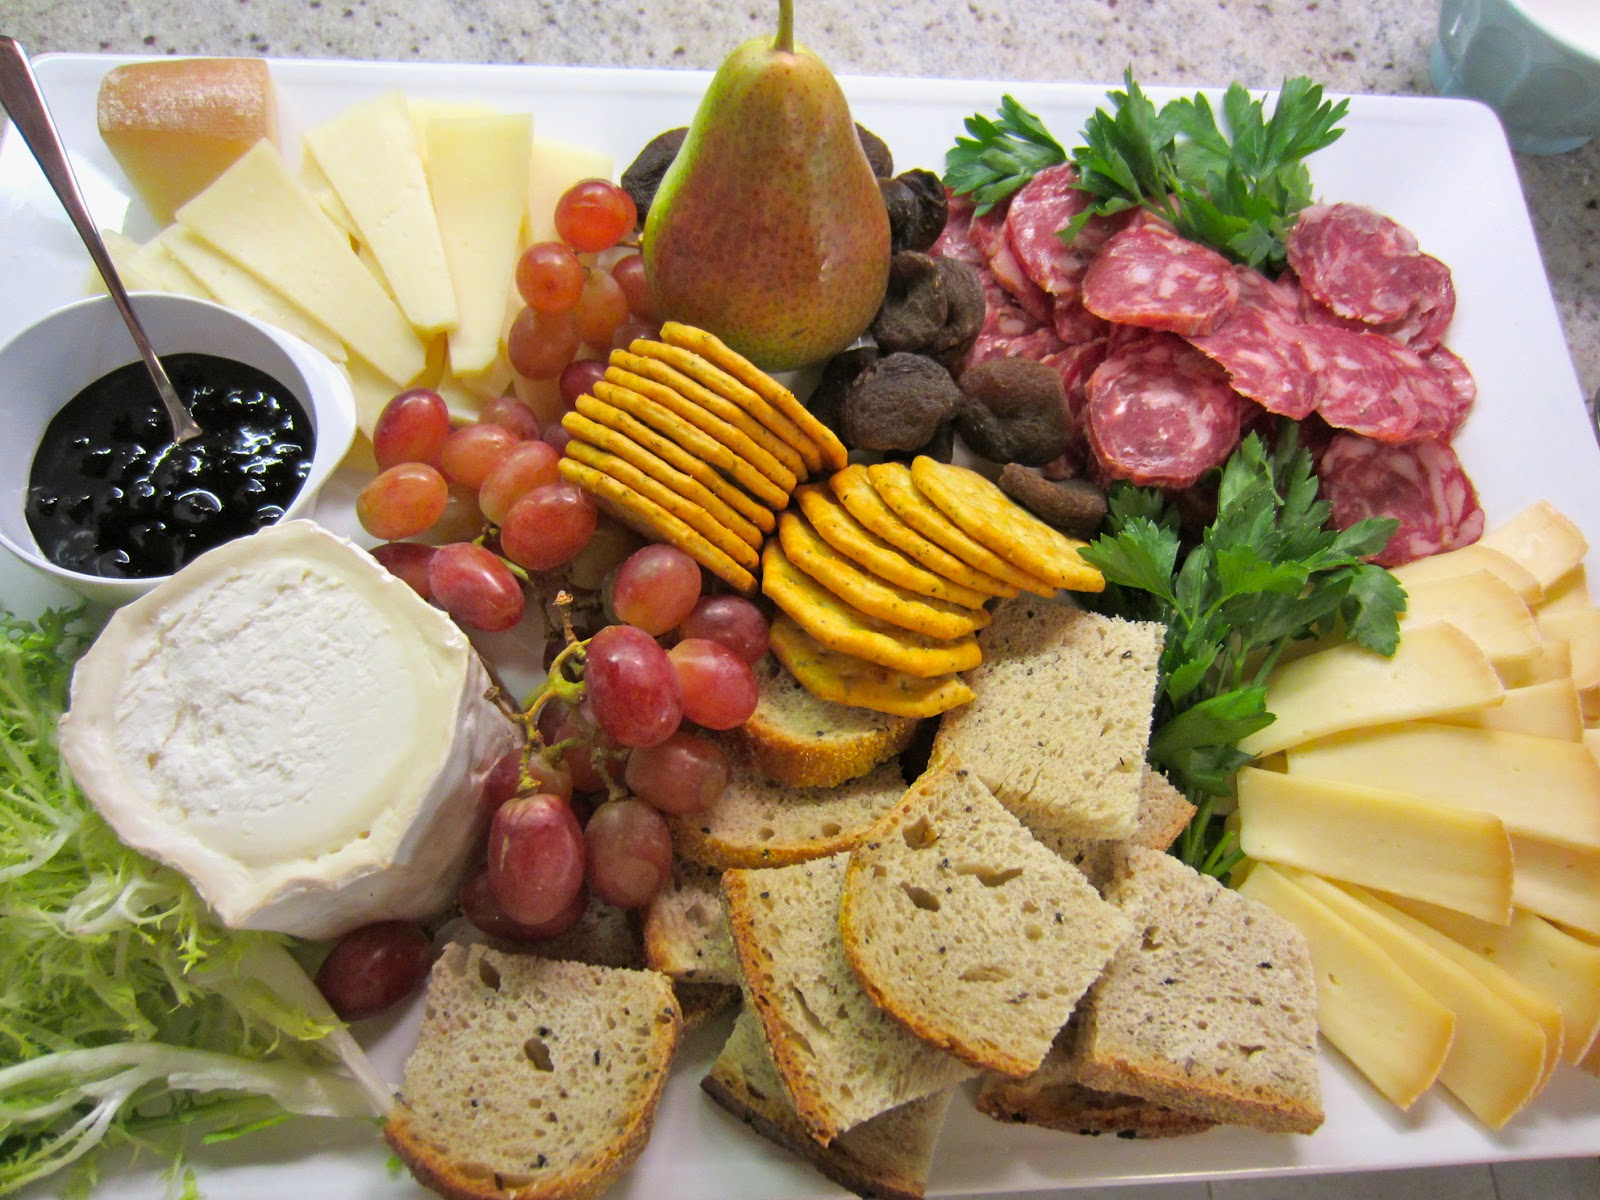 French Cheese And Charcuterie Plate Part 1 Photo Nk